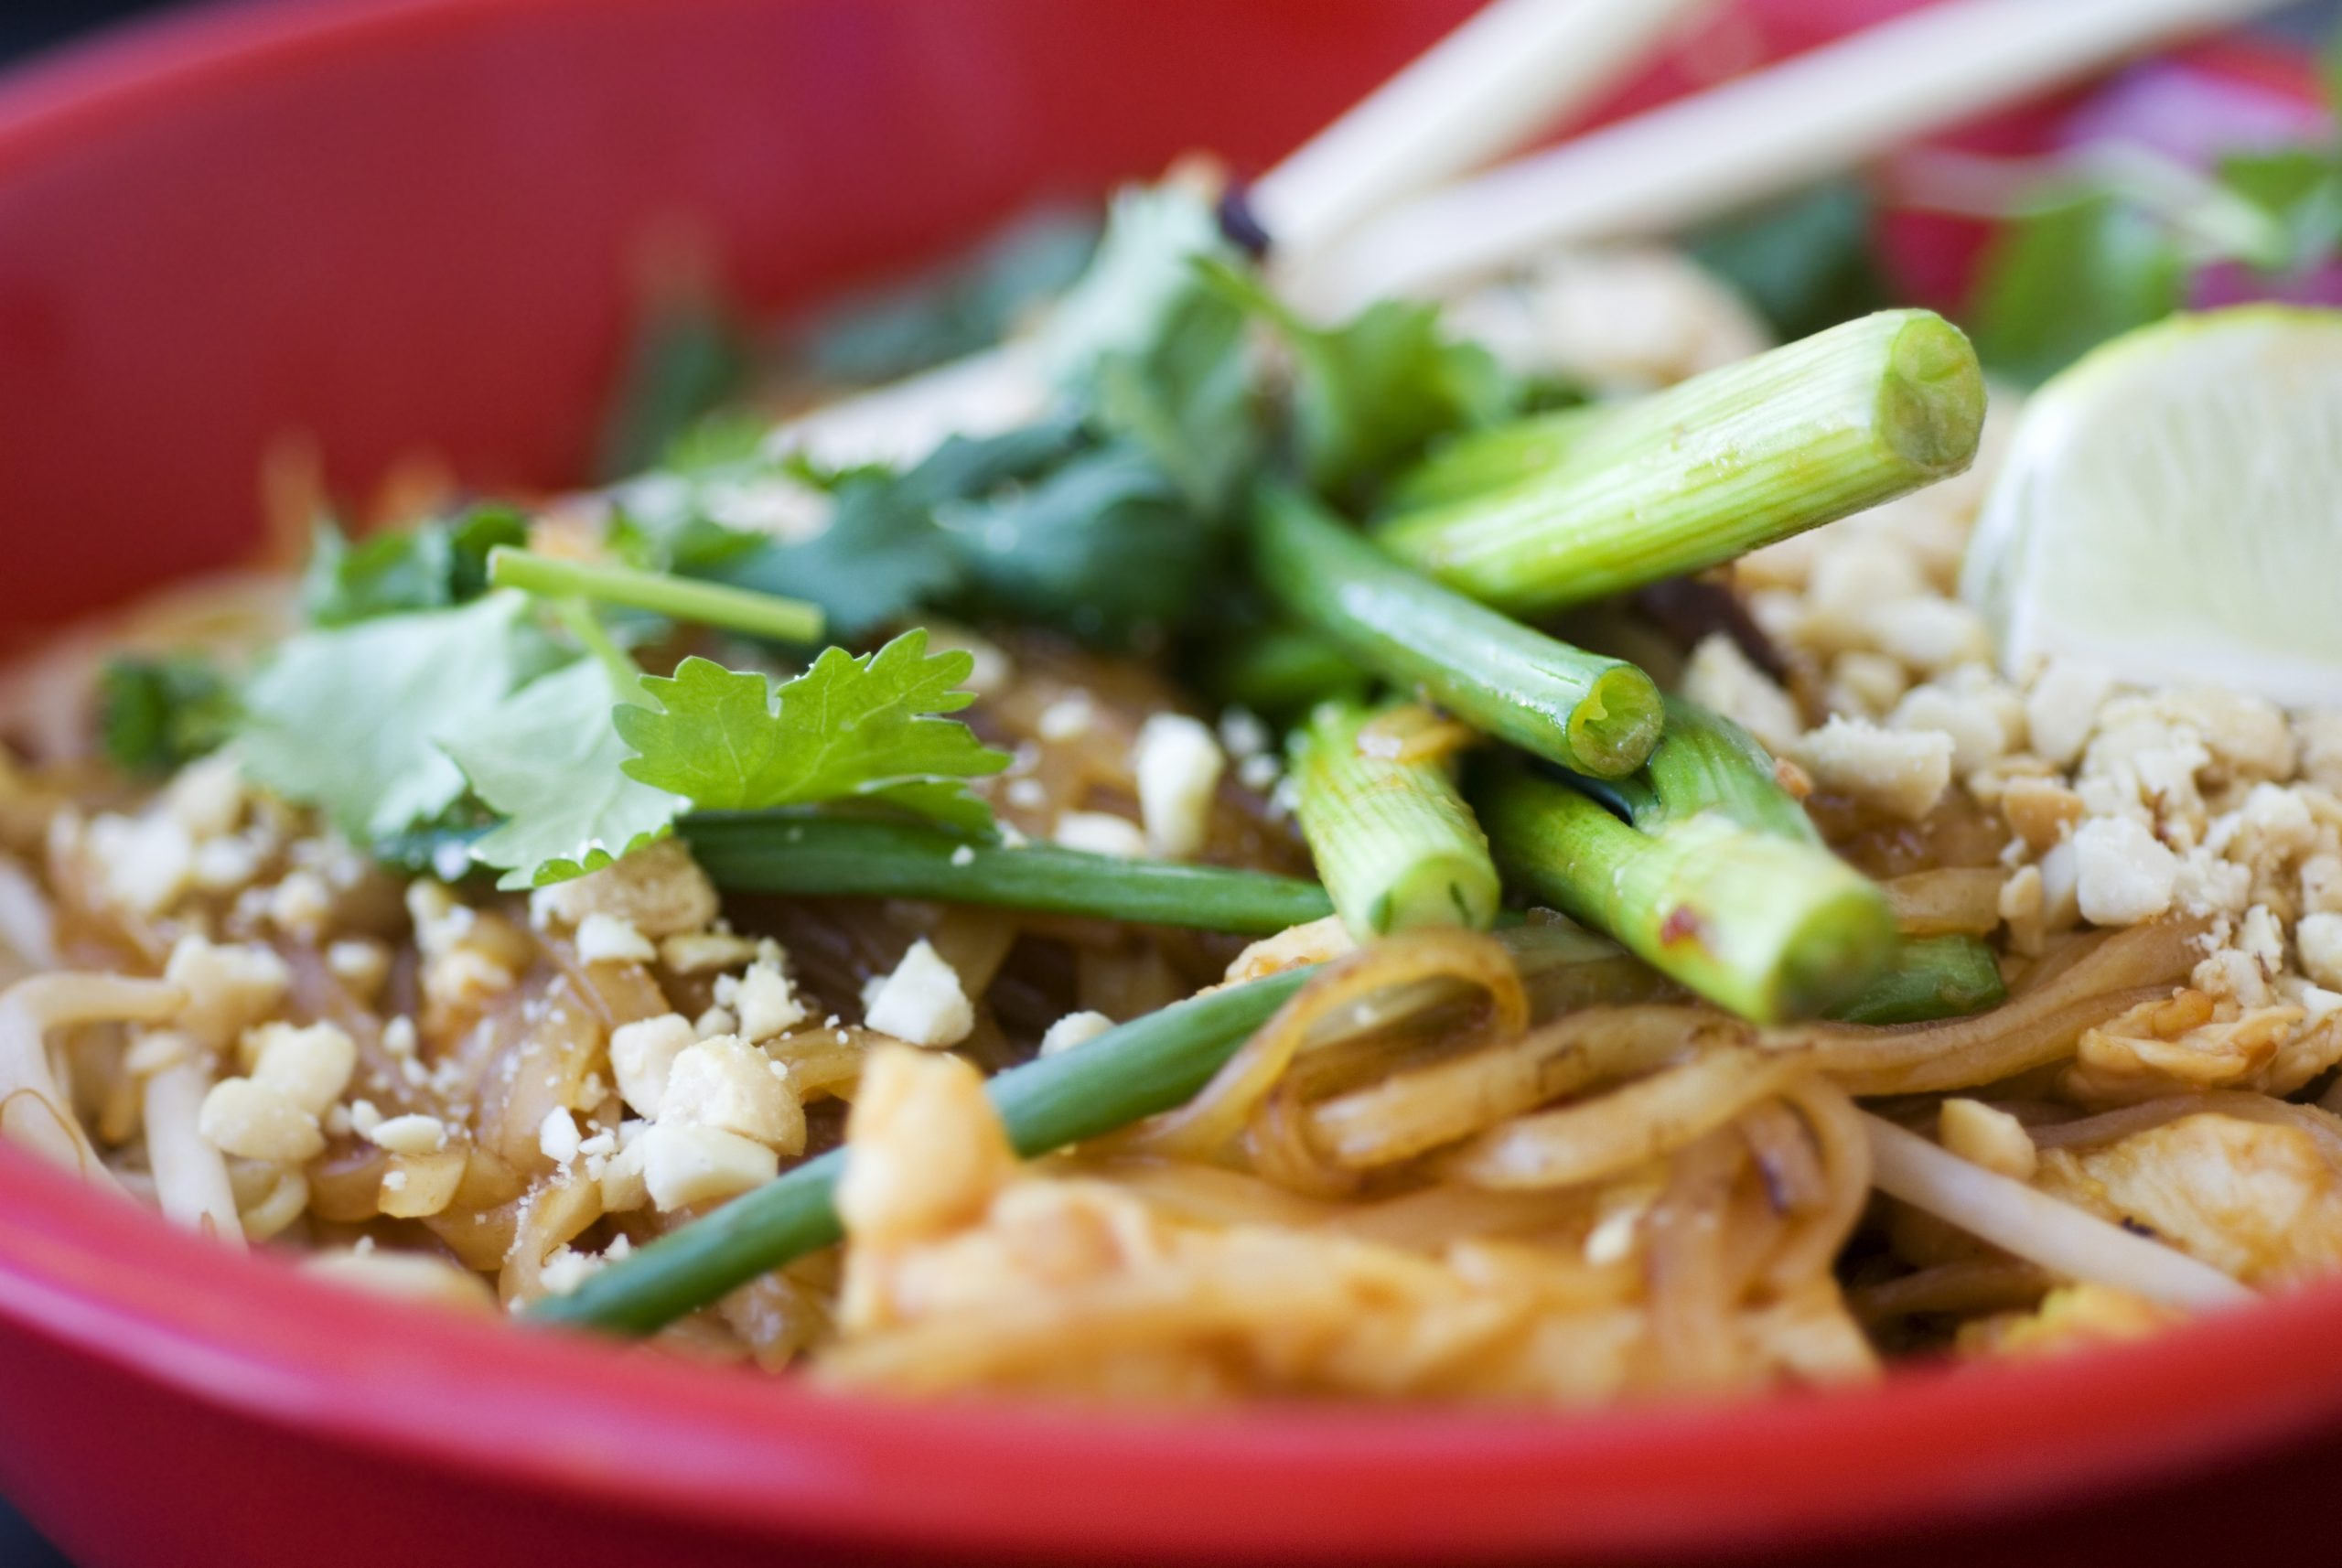 Delicious Asian Pad Thai noodles vegetables.